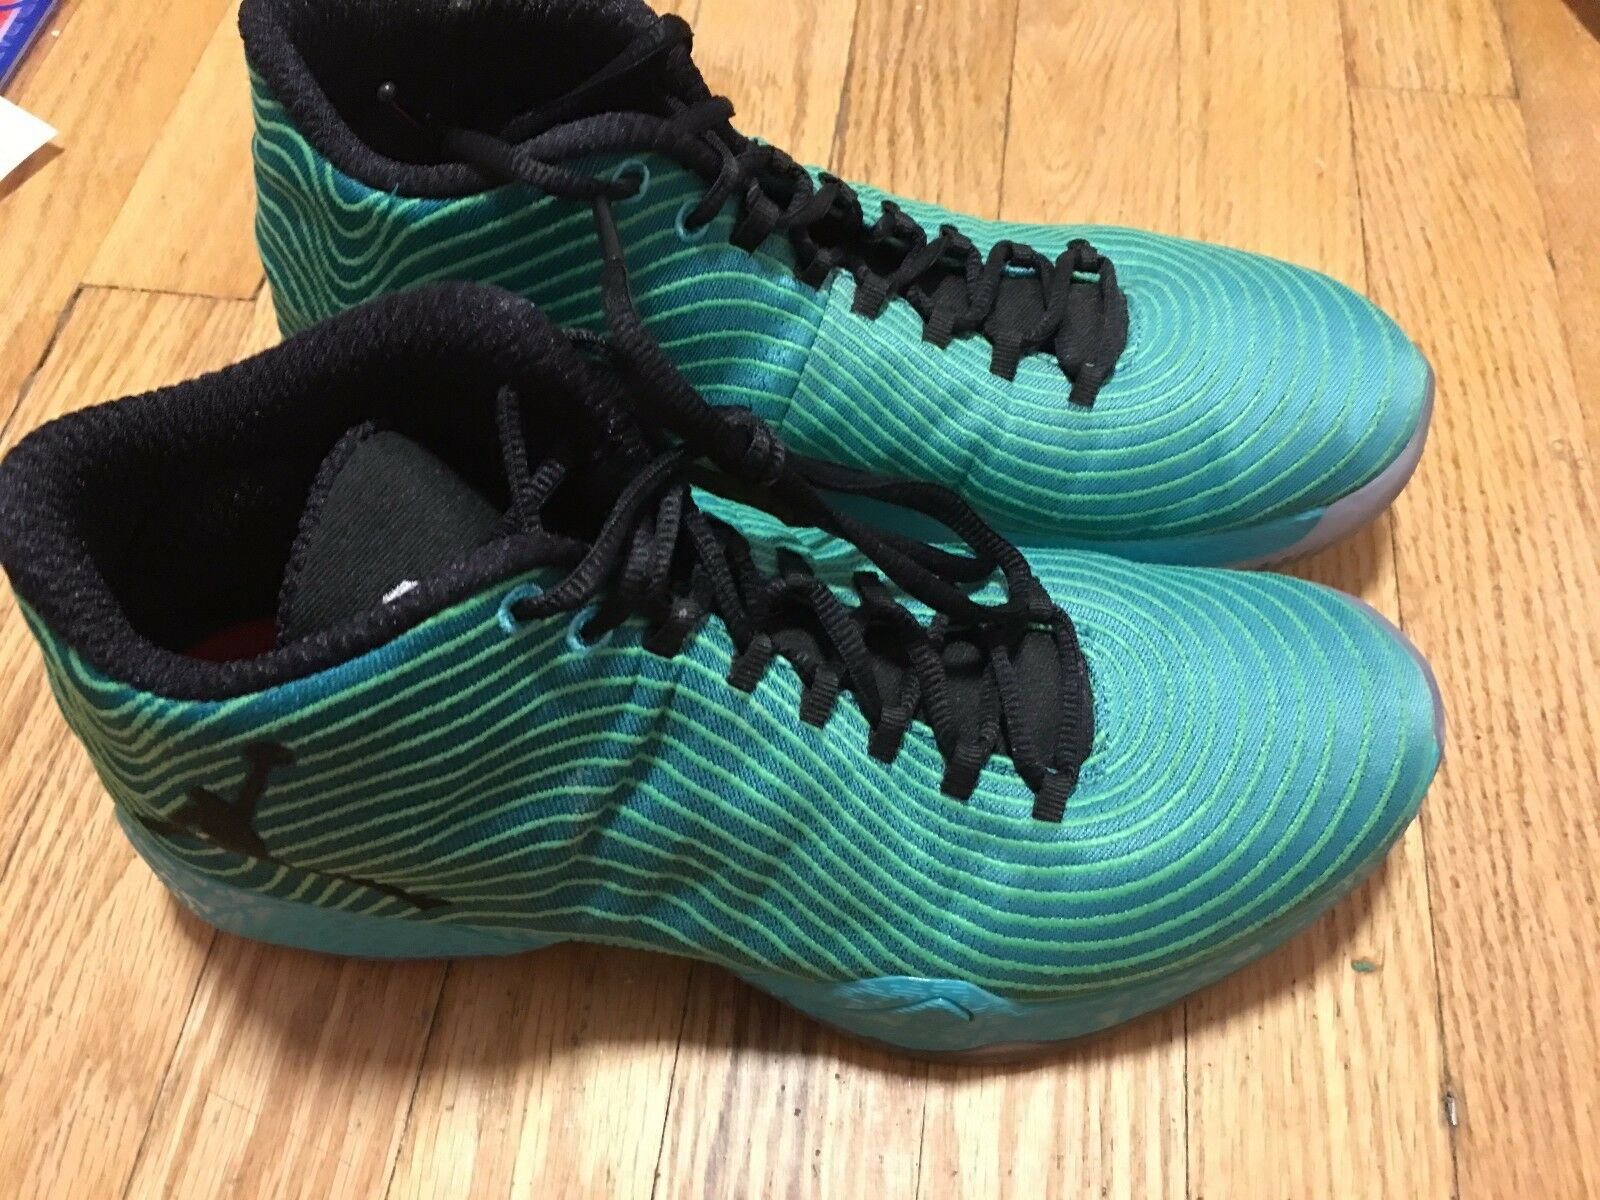 Jordan xx9 easter Green 29 size 10.5 USED No box Worn 2x Special limited time